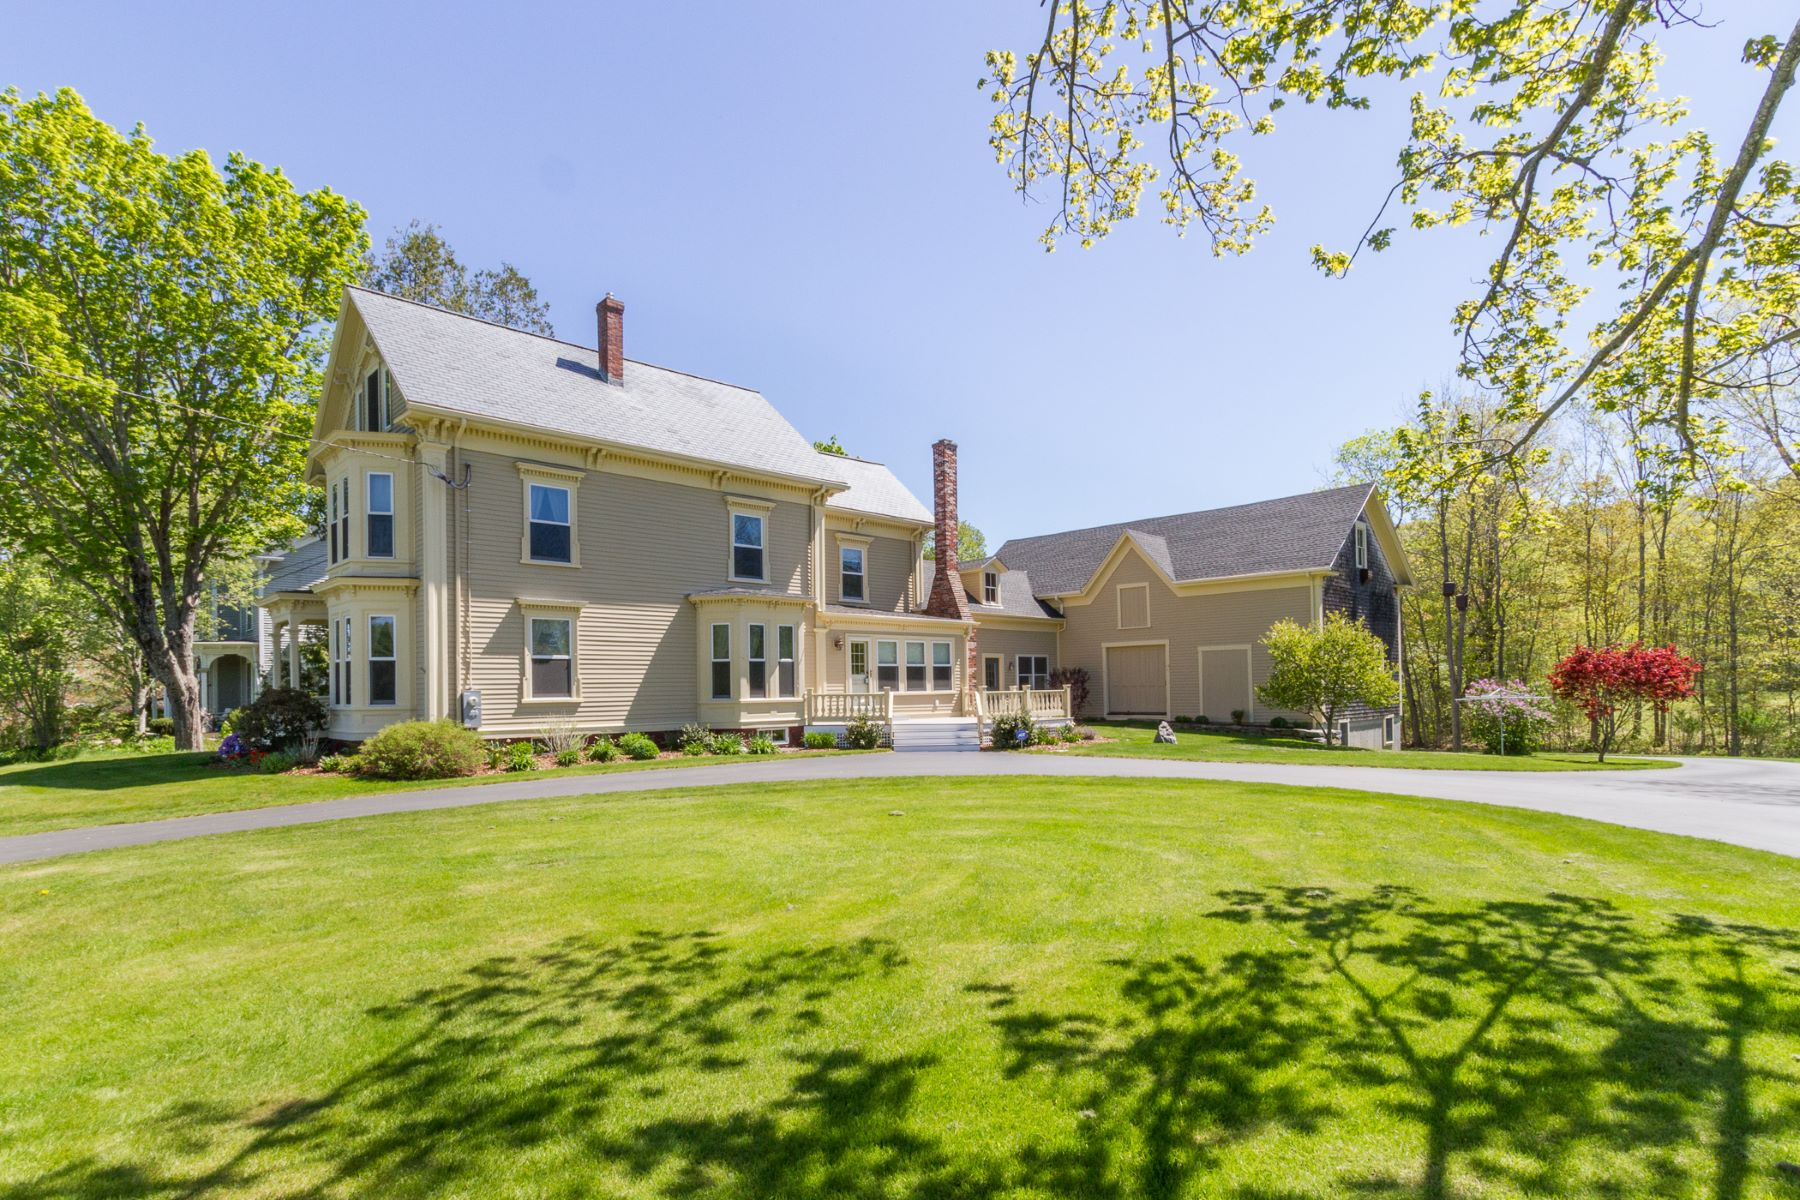 Single Family Home for Sale at 28 The King's Highway Newcastle, Maine, 04553 United States